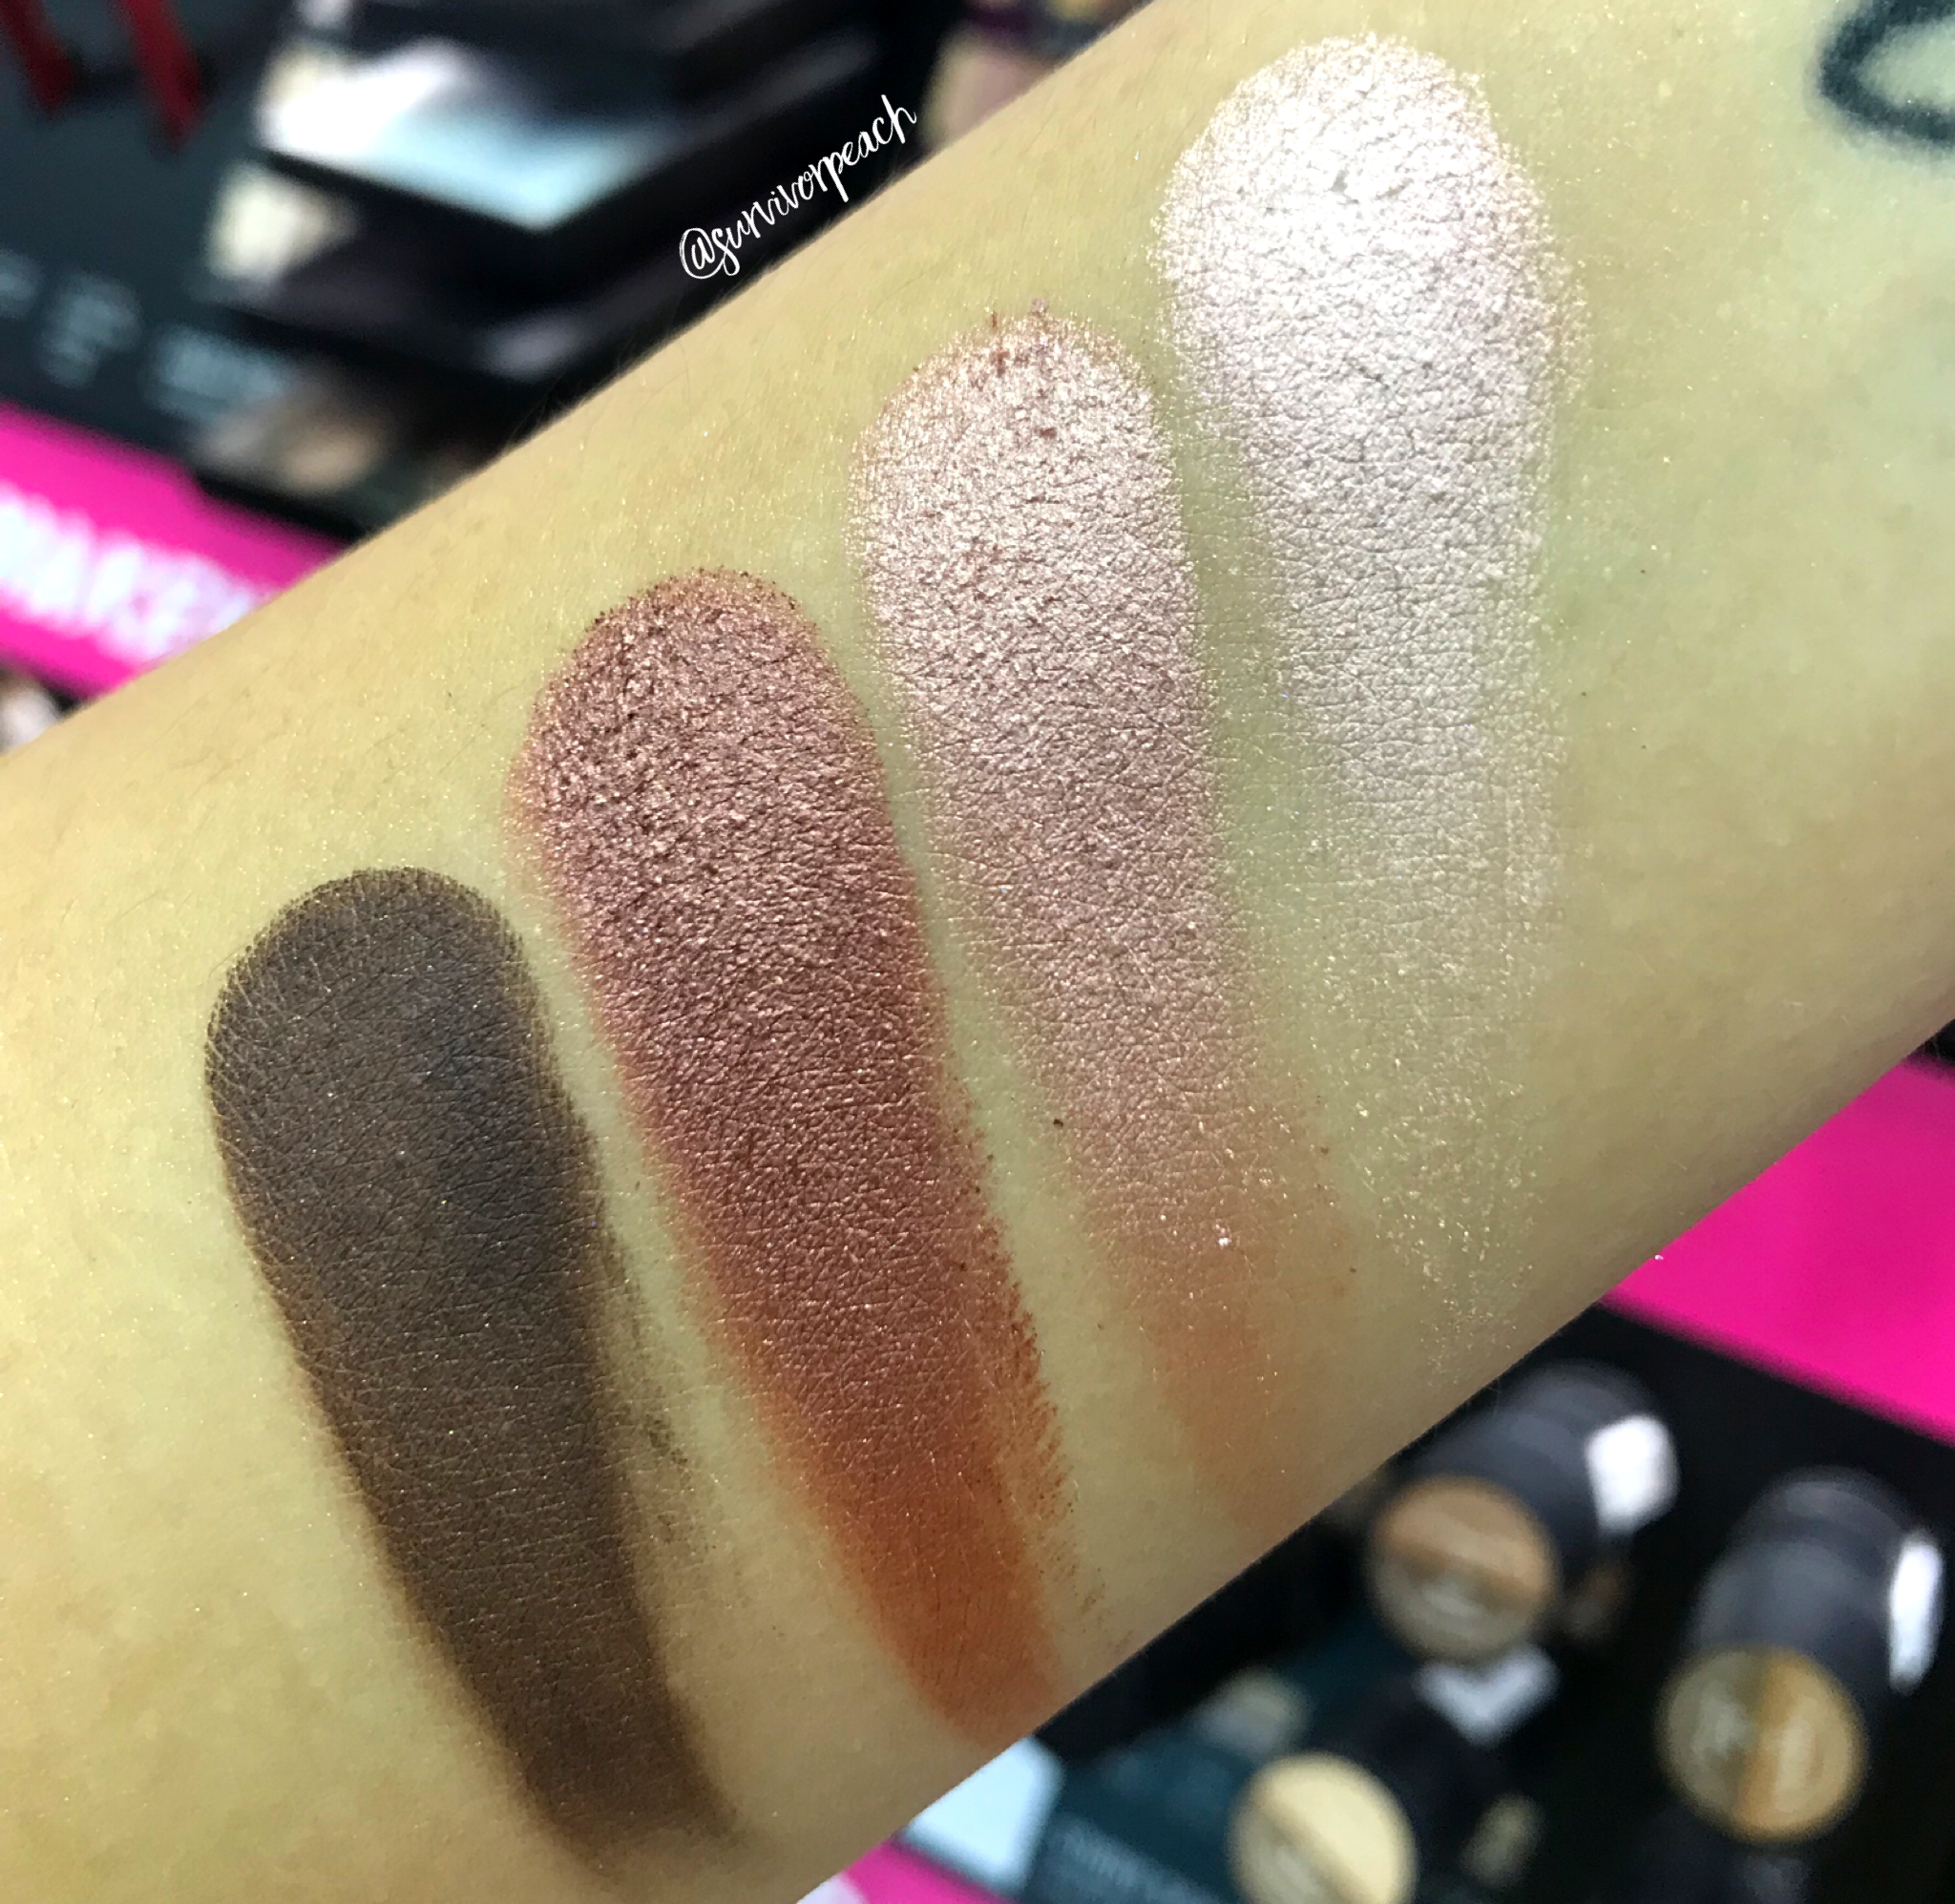 Swatches of the Smashbox Covershot Eyeshadow palette - Petal Metal